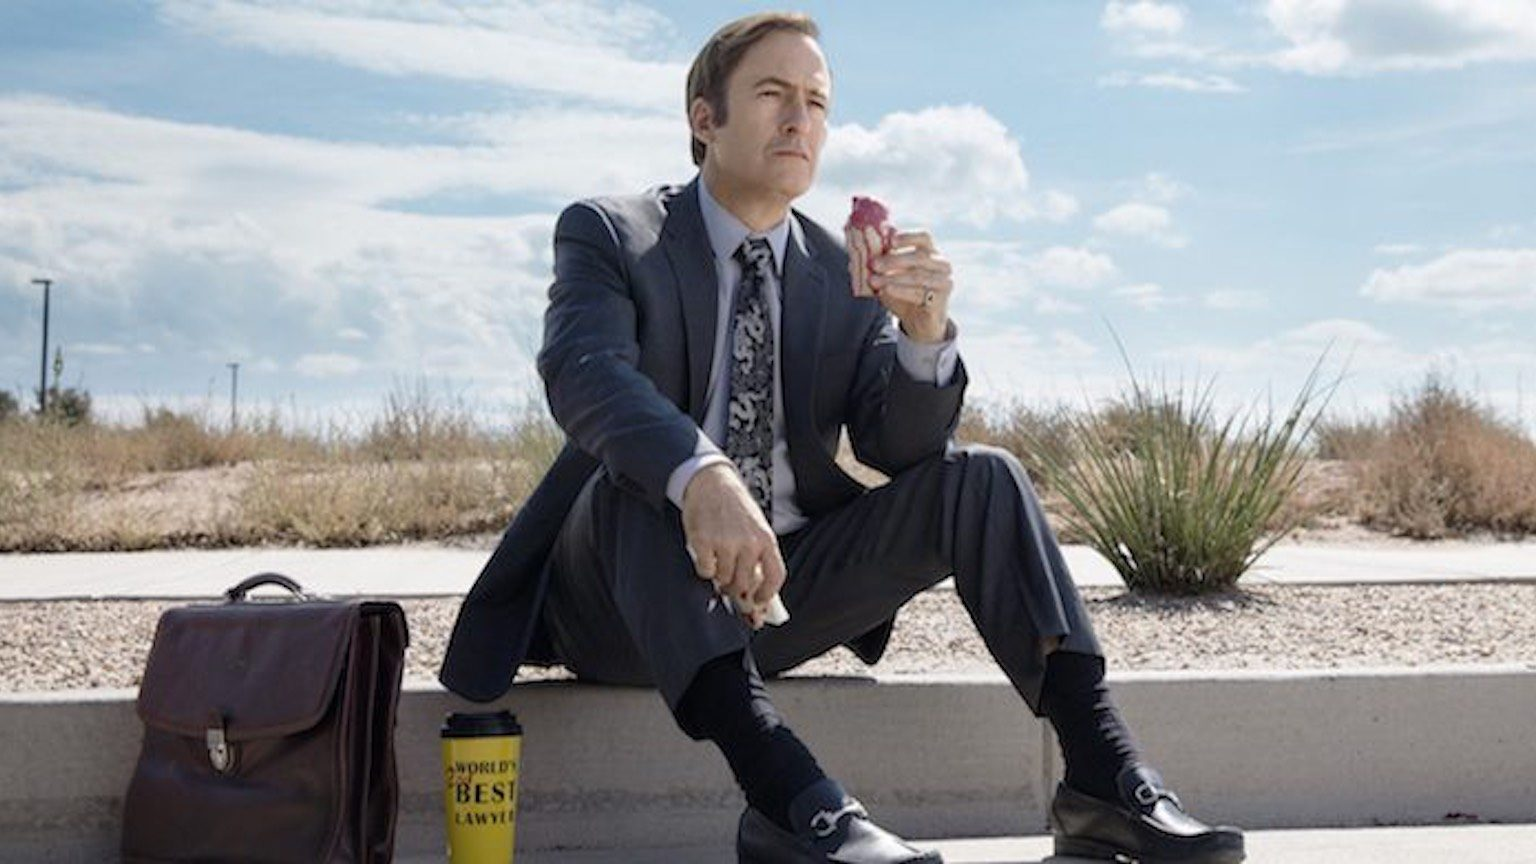 Saul Goodman, sitting on the gutter with his briefcase and coffee eating a donut